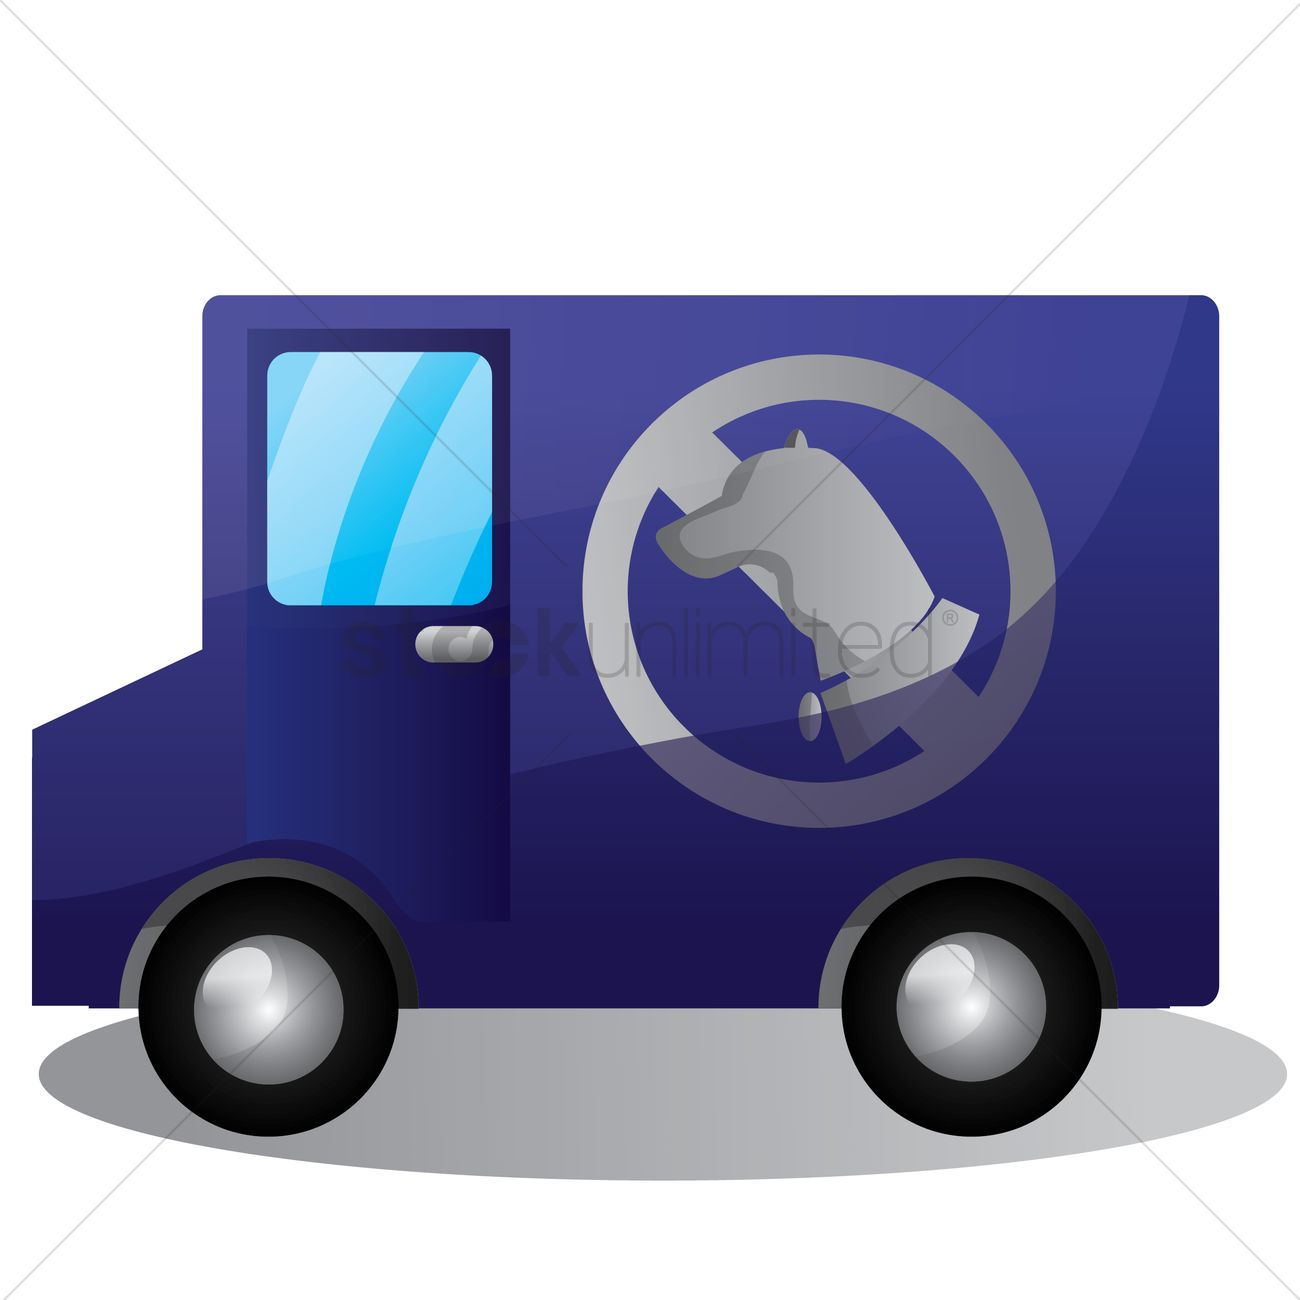 Van vector image stockunlimited. Catcher clipart dog png